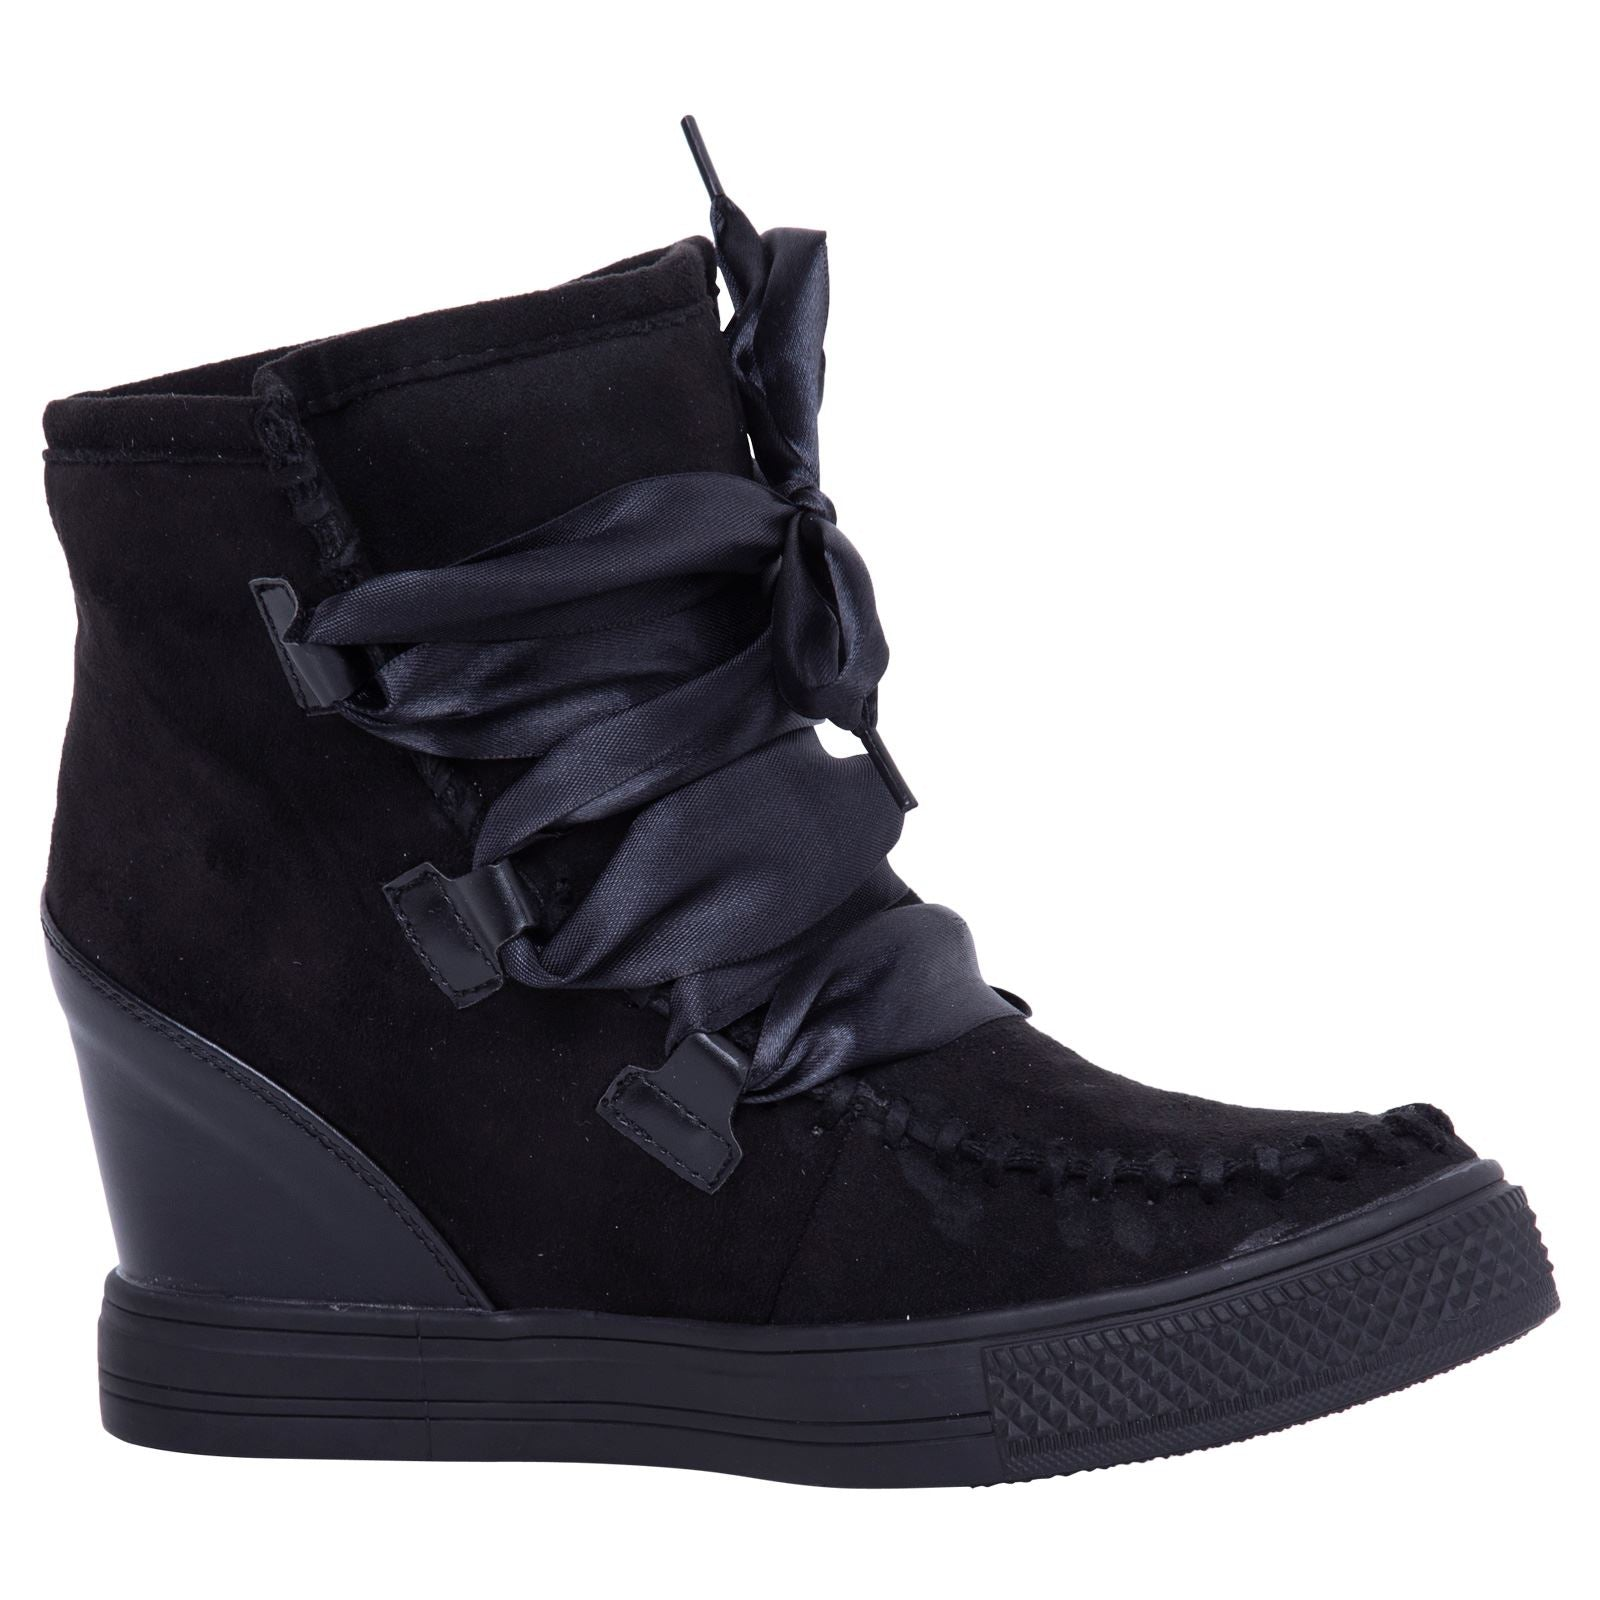 Kacee Stylish Wedge Trainers in Black With Ribbon